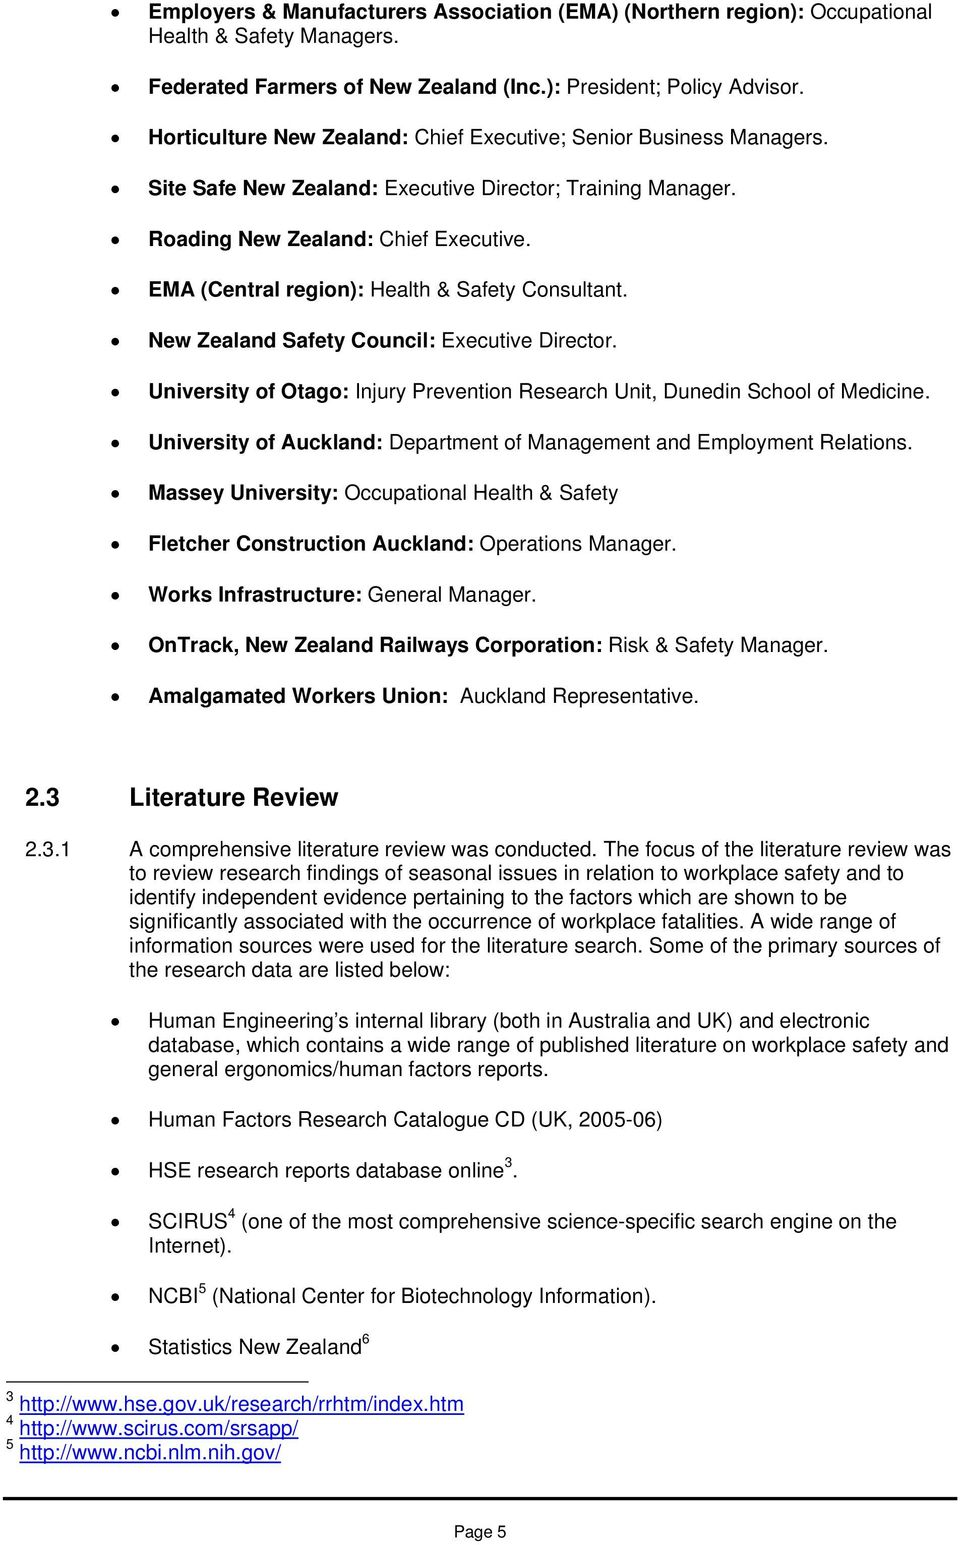 EMA (Central region): Health & Safety Consultant. New Zealand Safety Council: Executive Director. University of Otago: Injury Prevention Research Unit, Dunedin School of Medicine.